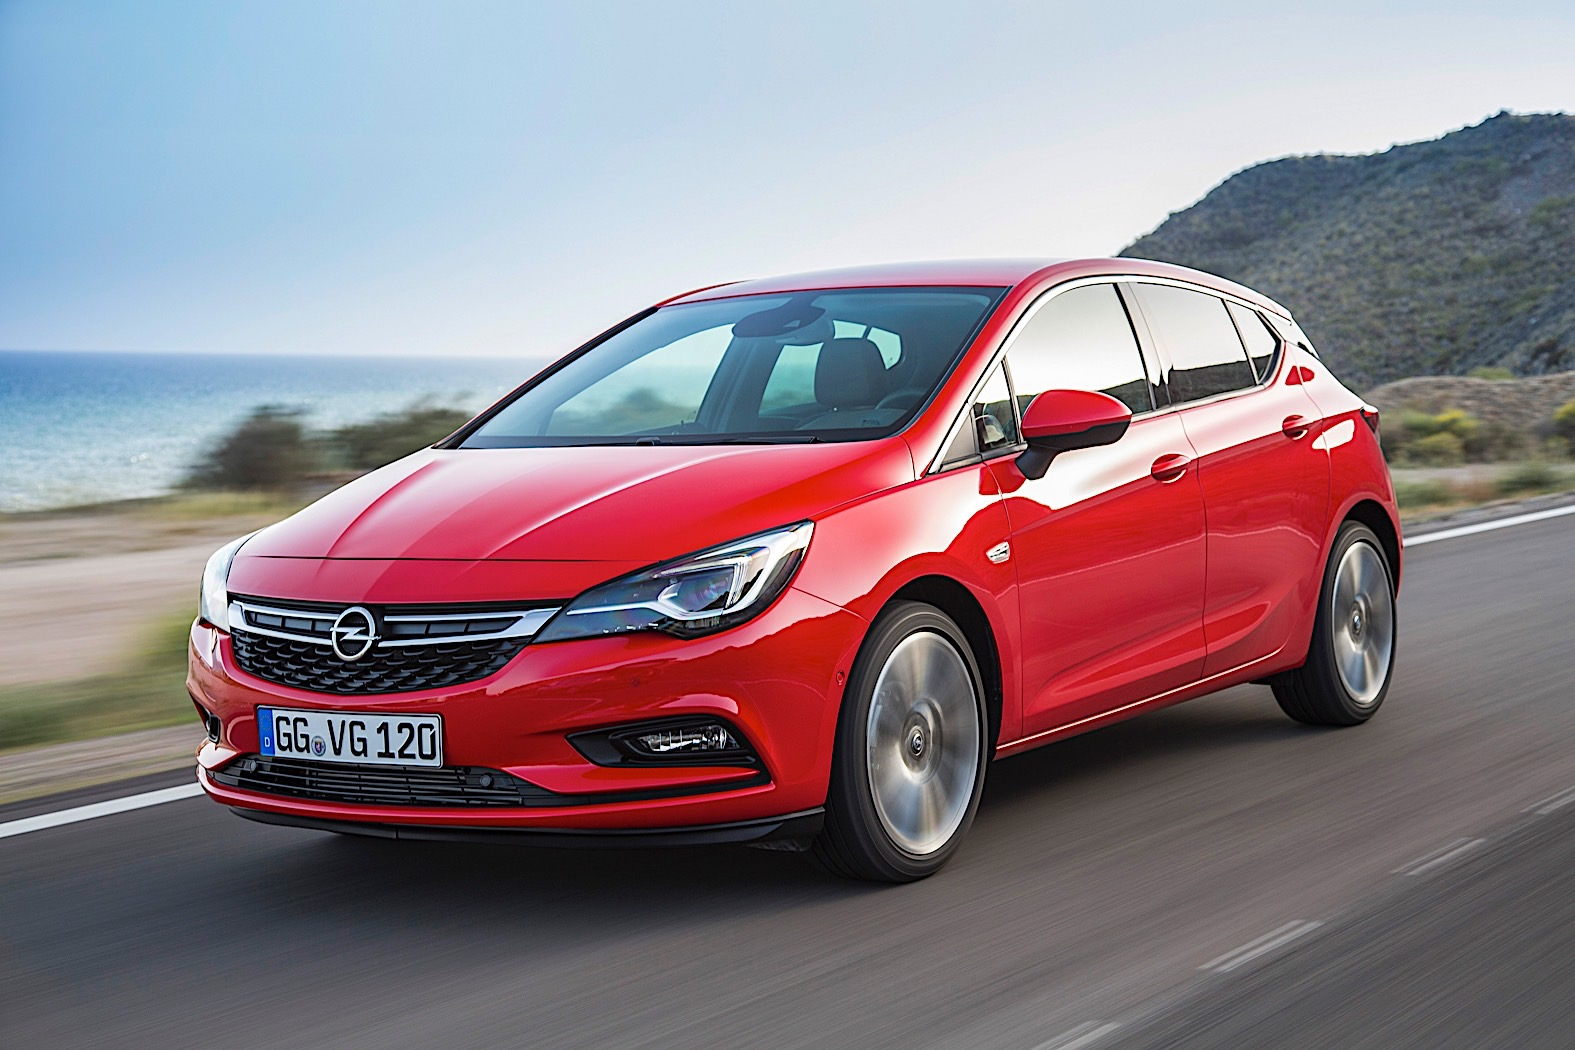 2021 opel astra will have peugeot platform and up to 220